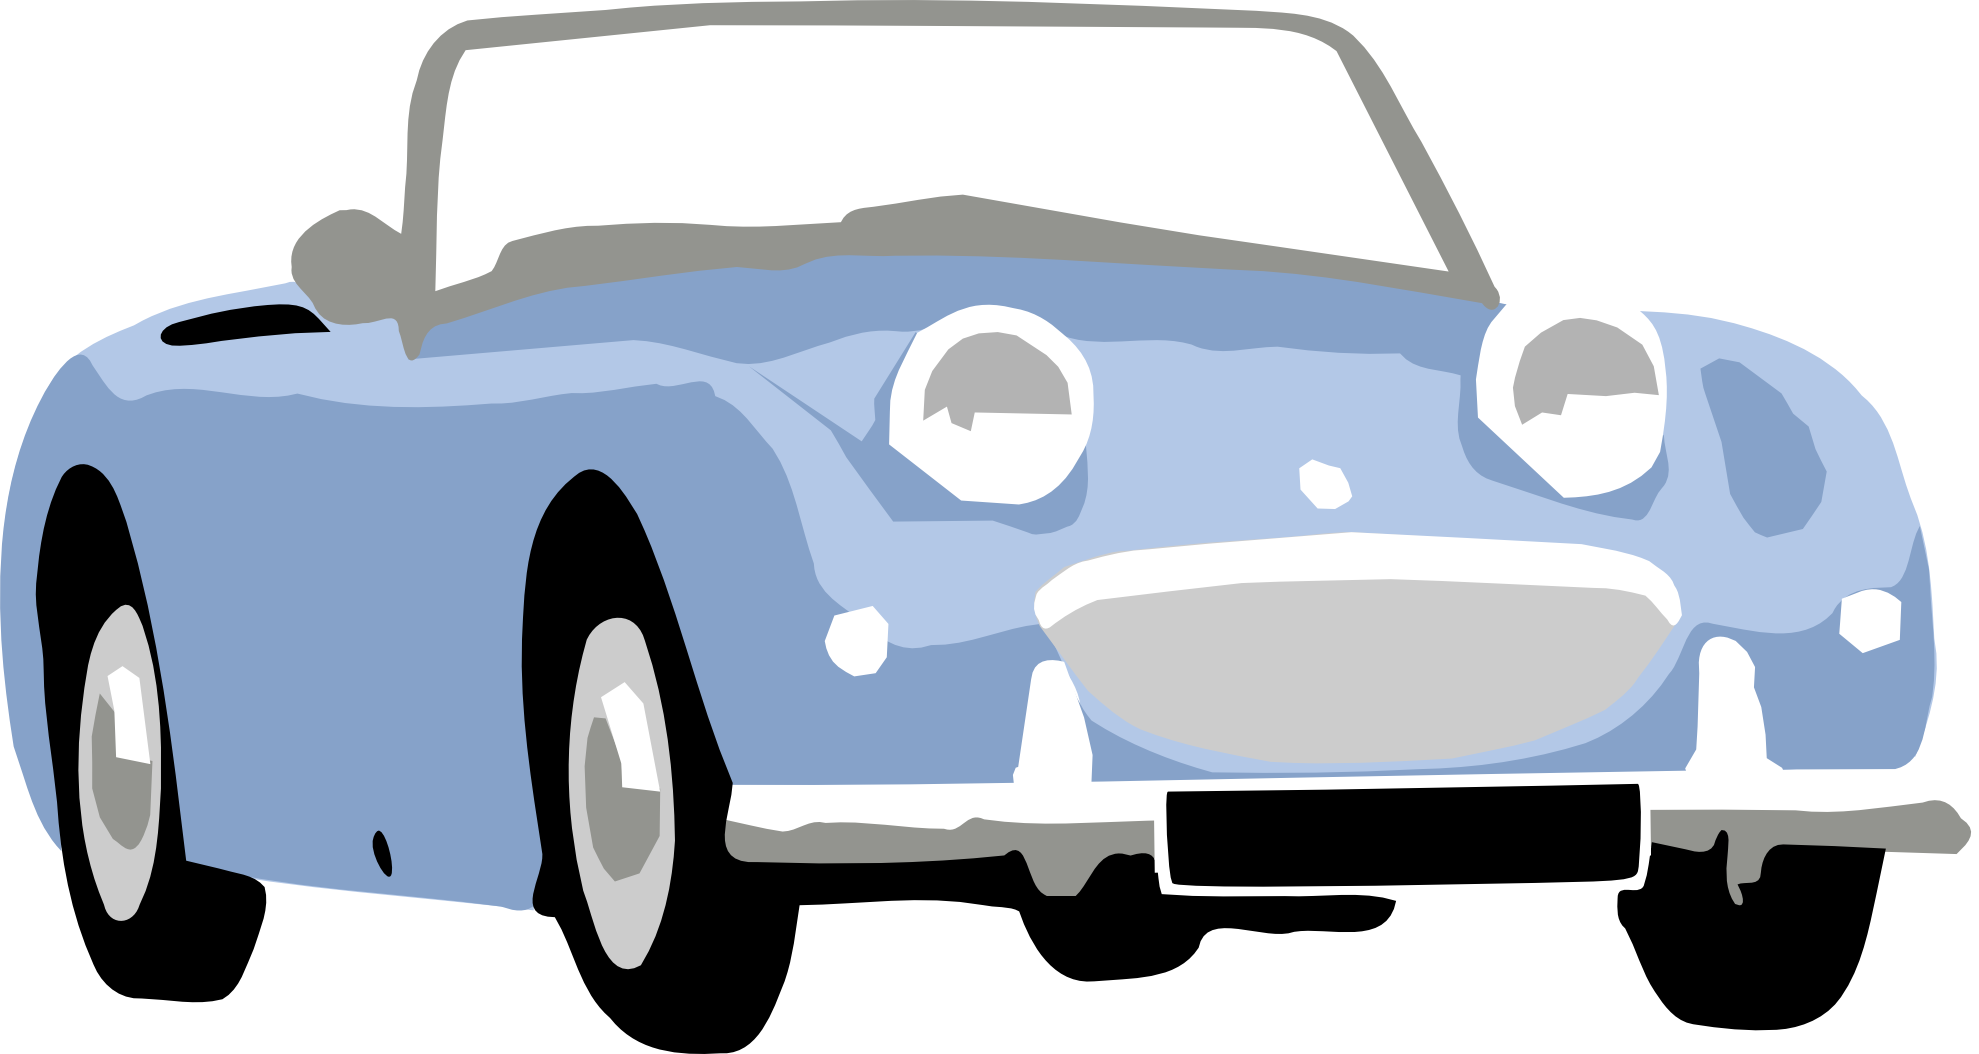 Car with hood open clipart vector royalty free download Hot Wheels Cars Clipart at GetDrawings.com | Free for personal use ... vector royalty free download